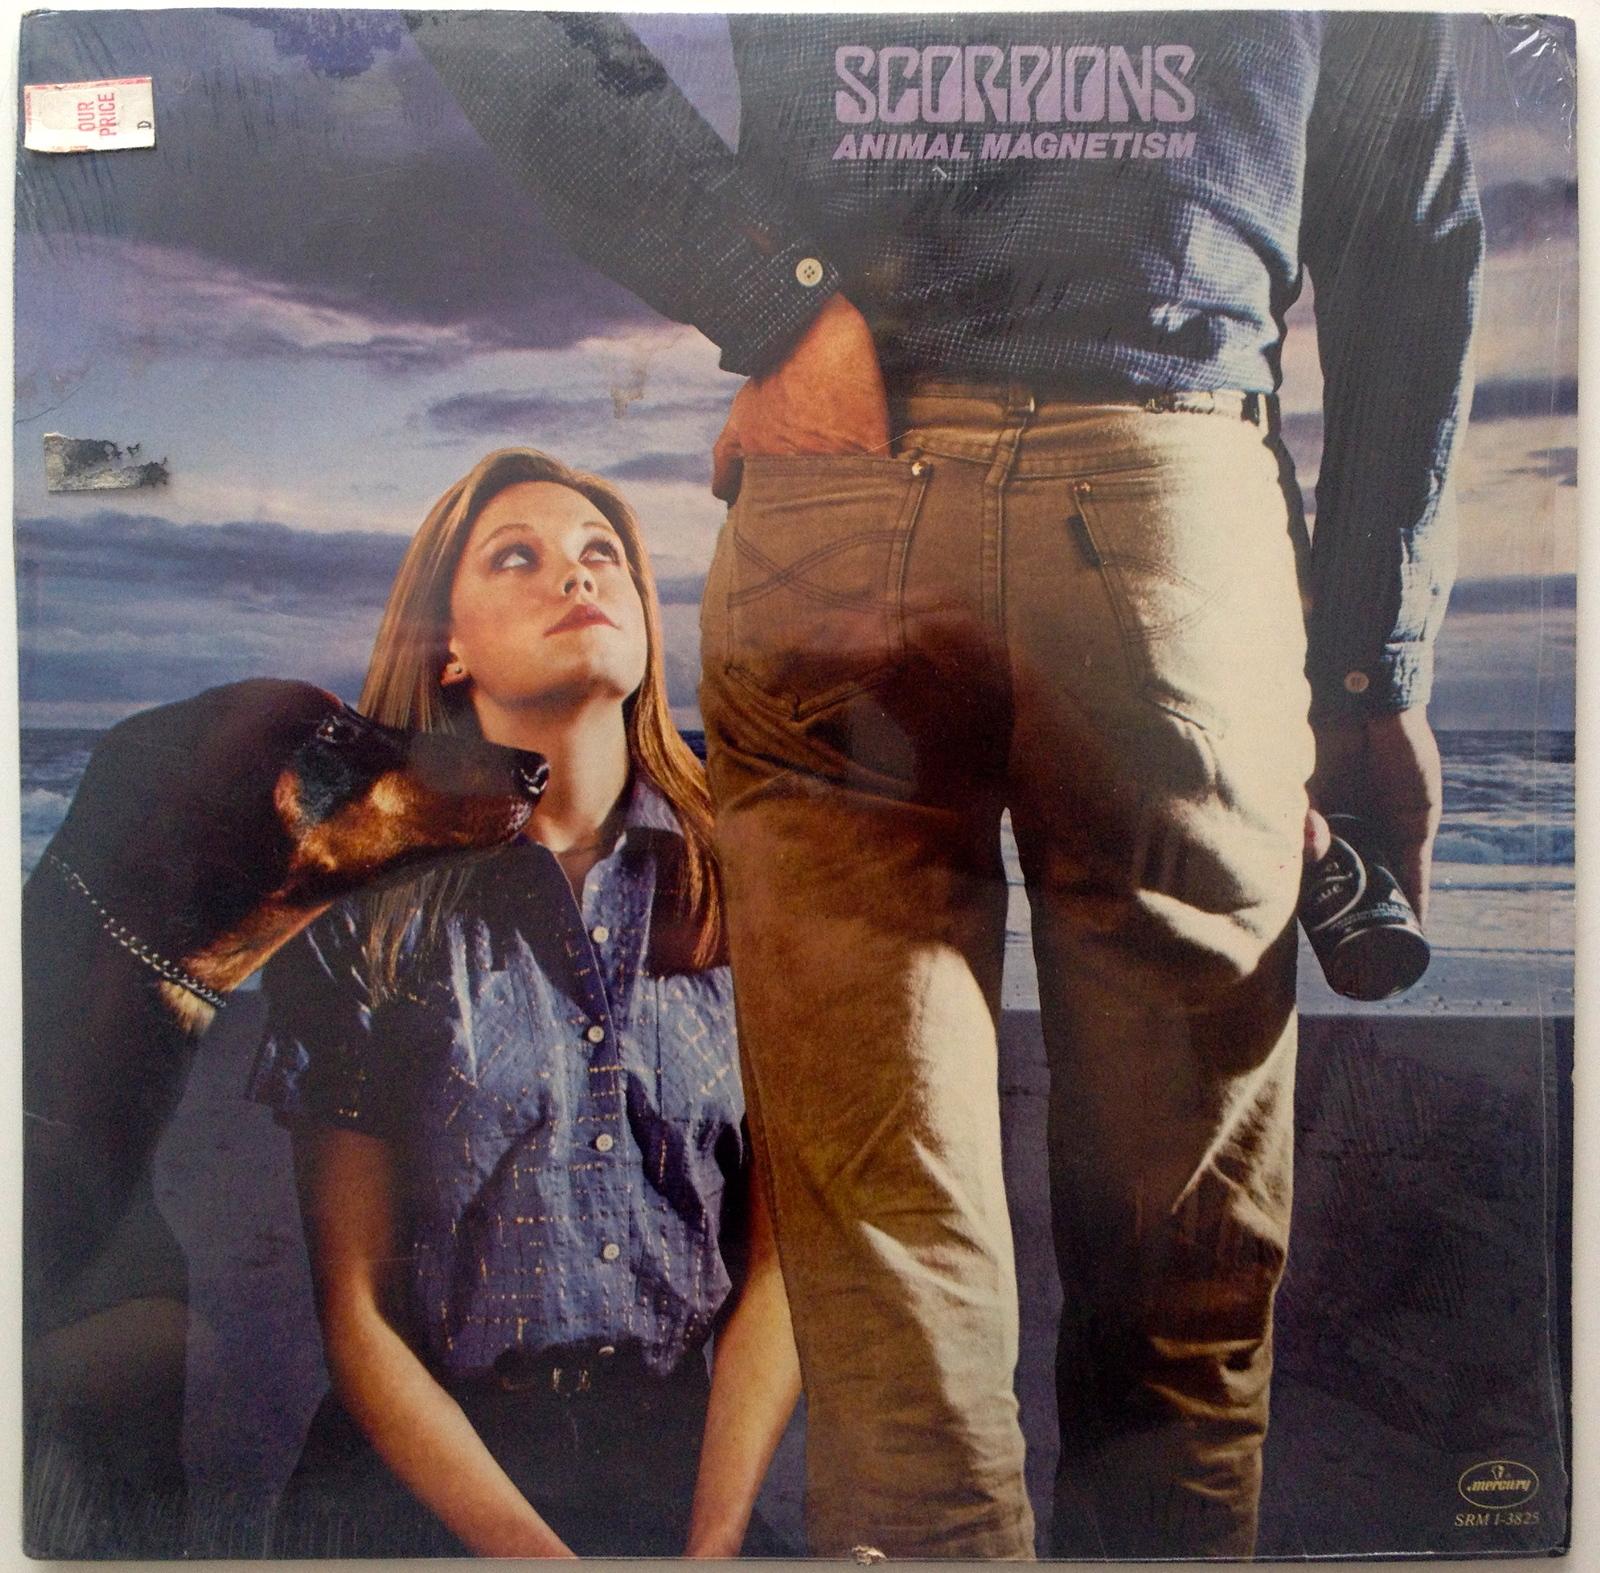 Scorpions - Animal Magnetism LP Vinyl Record Album, Hard Rock, 1980